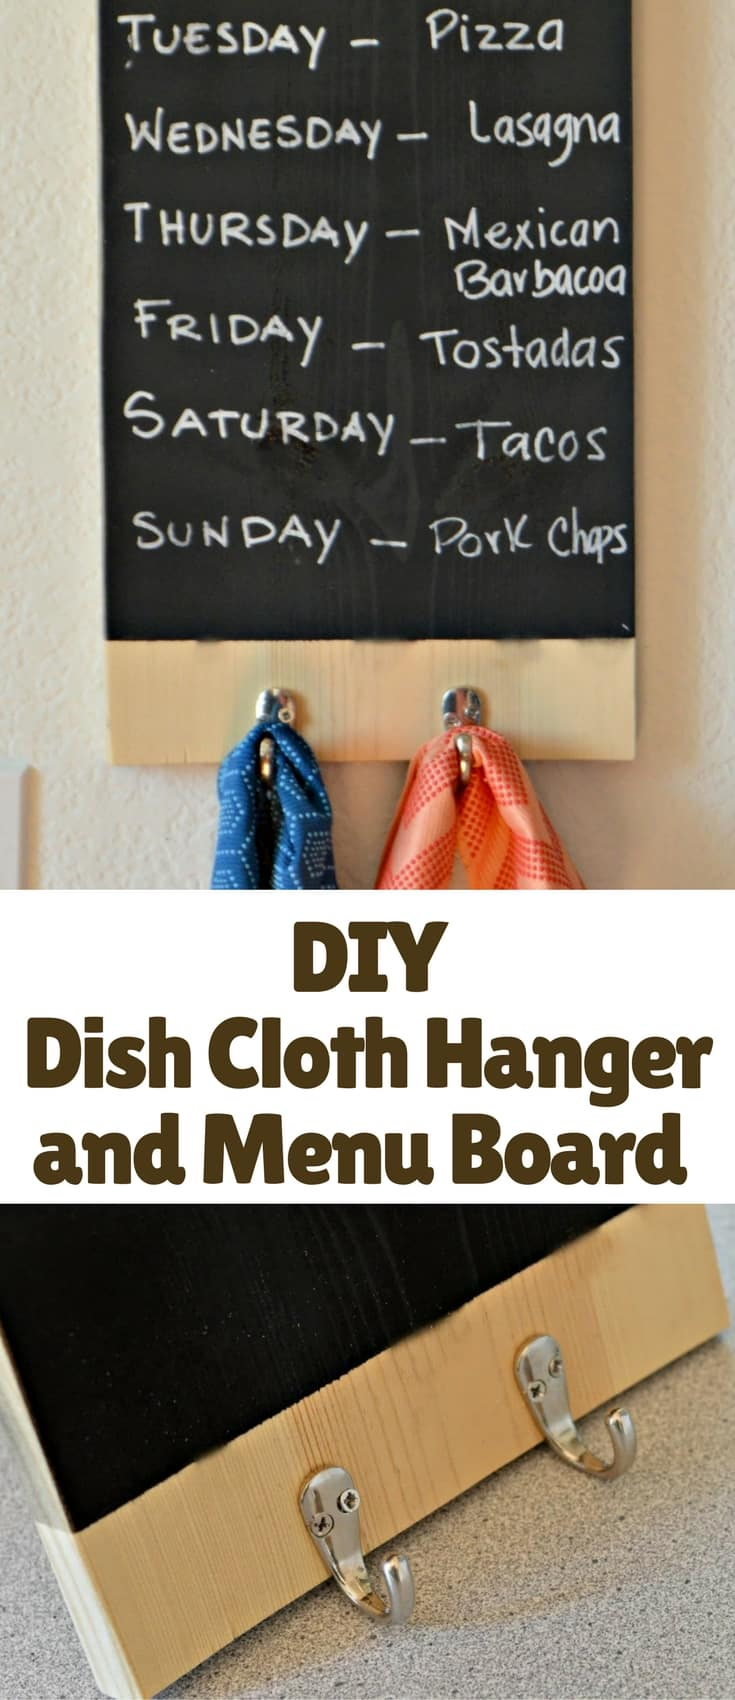 This is an easy tutorial that will look great in your kitchen and that is functional as well!